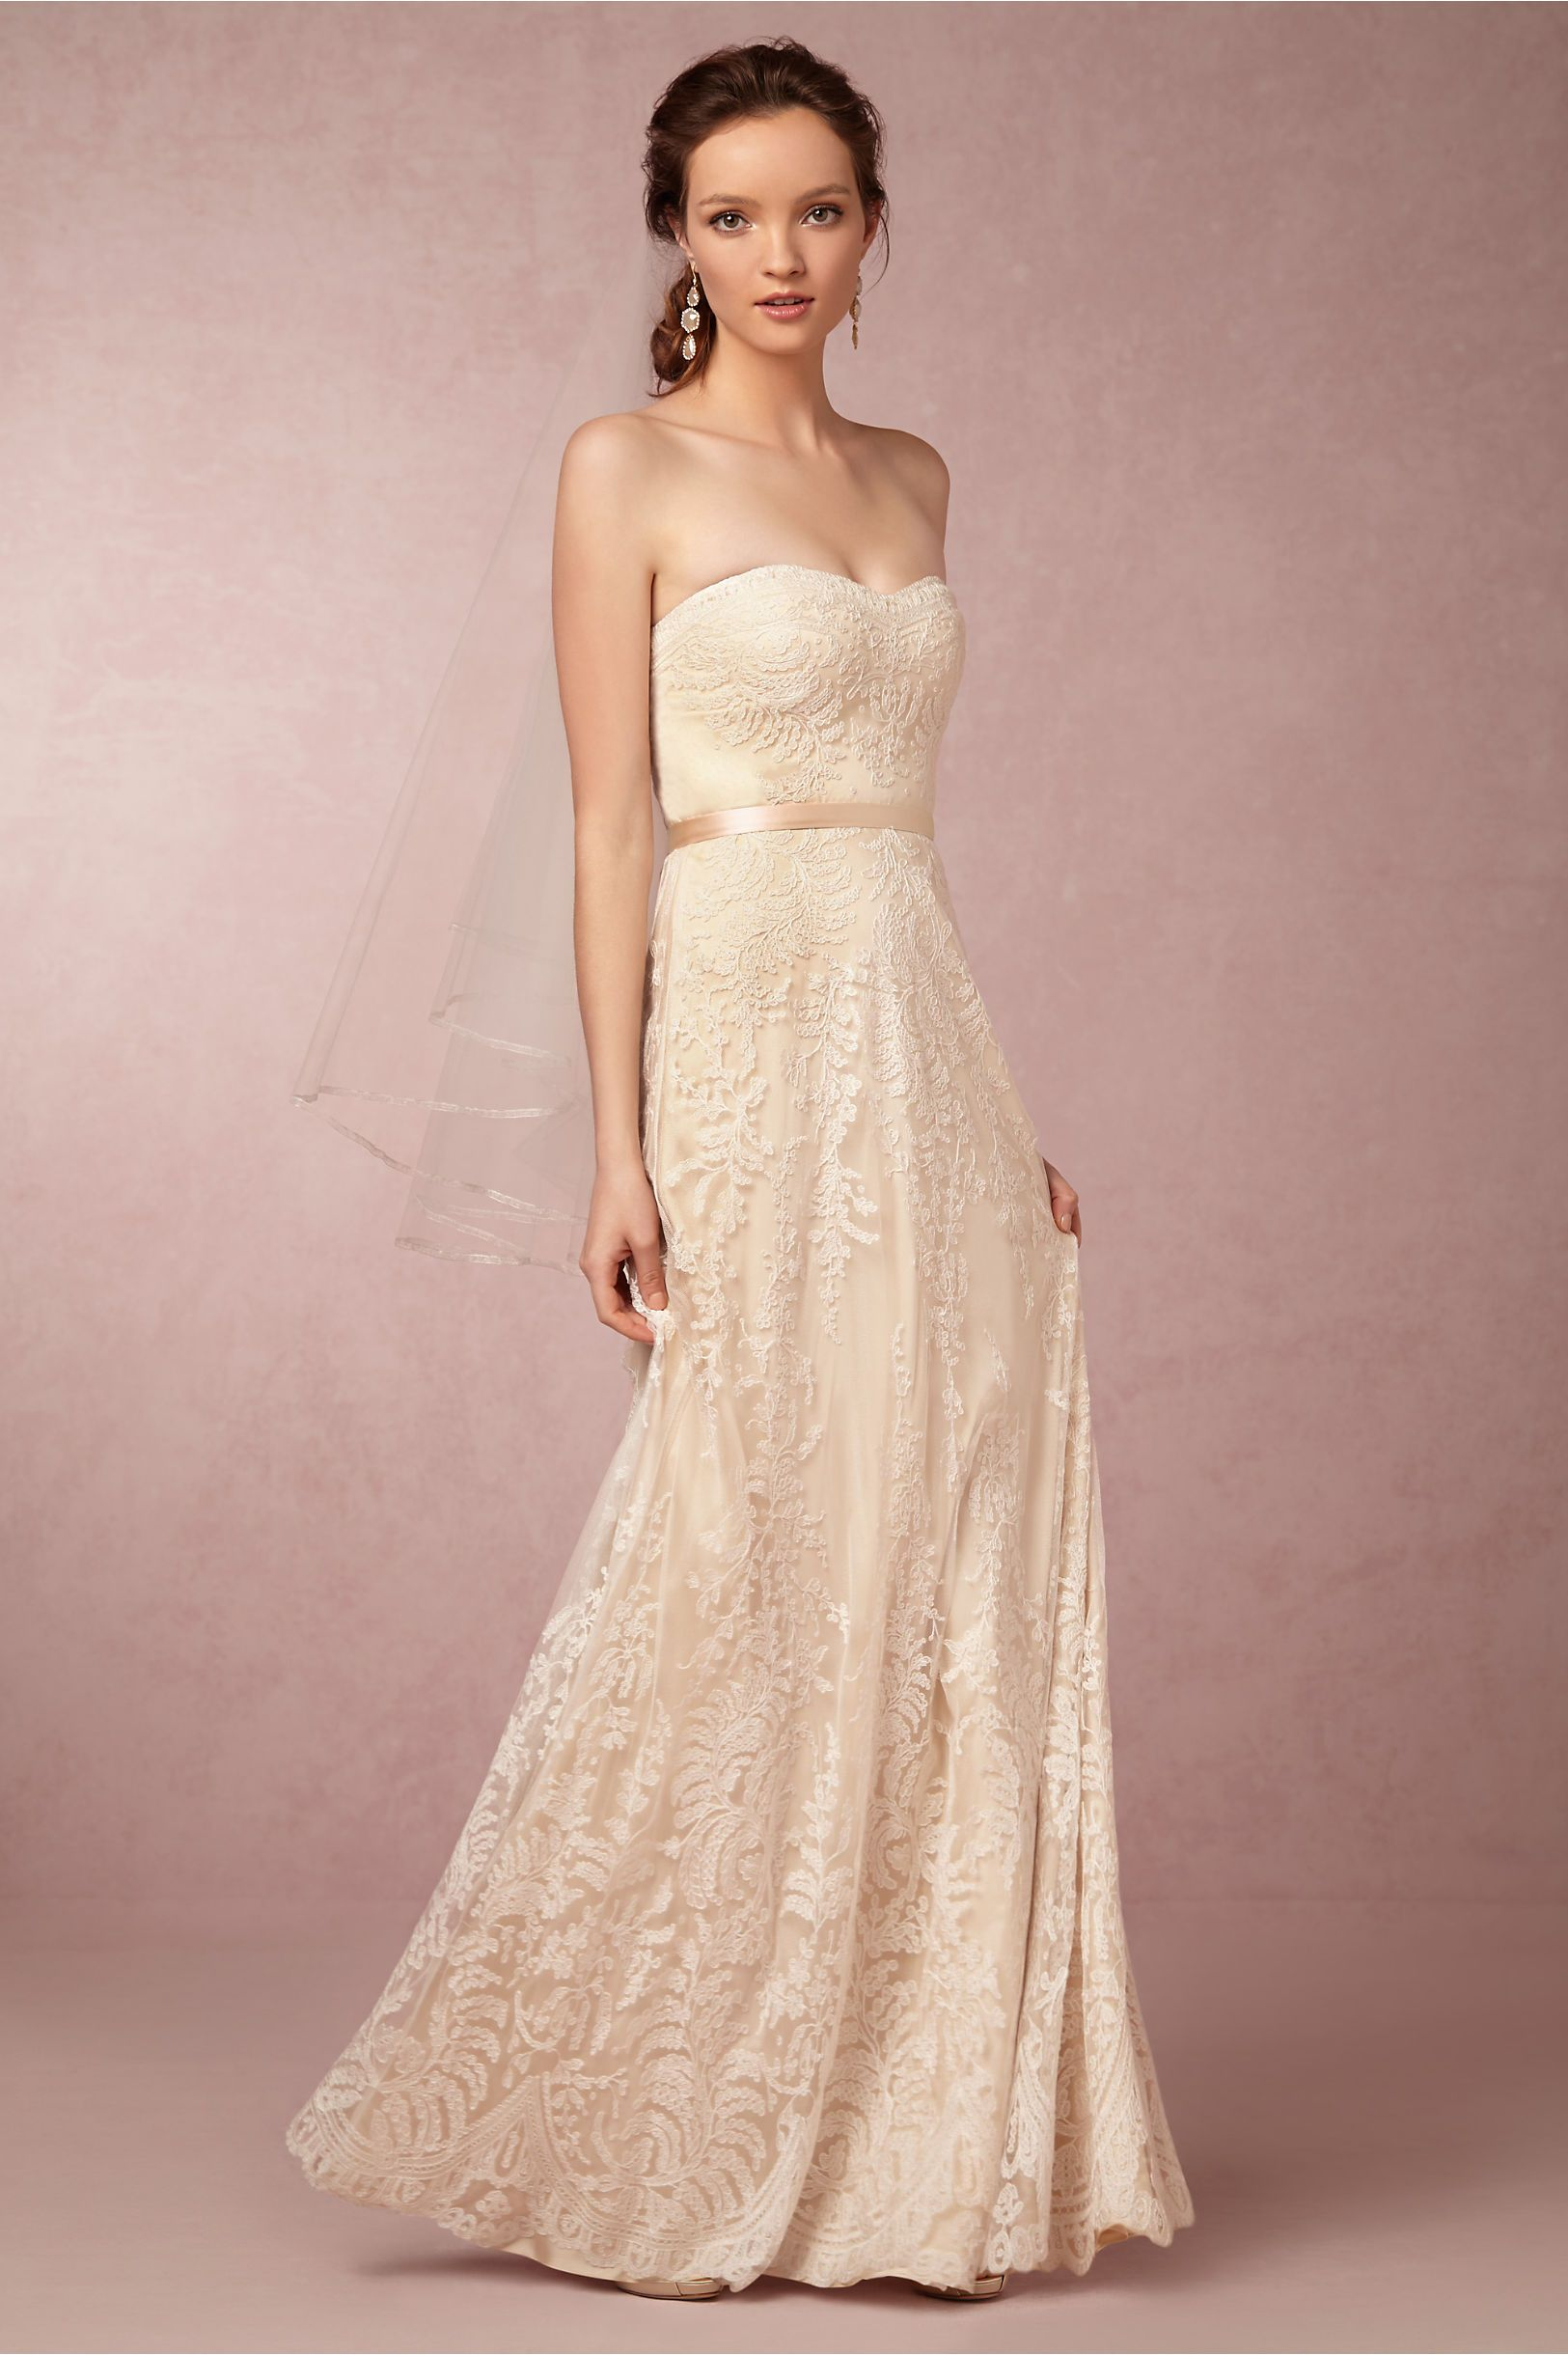 Zahara Gown by Catherine Deane for BHLDN | Fall Wedding Ideas ...